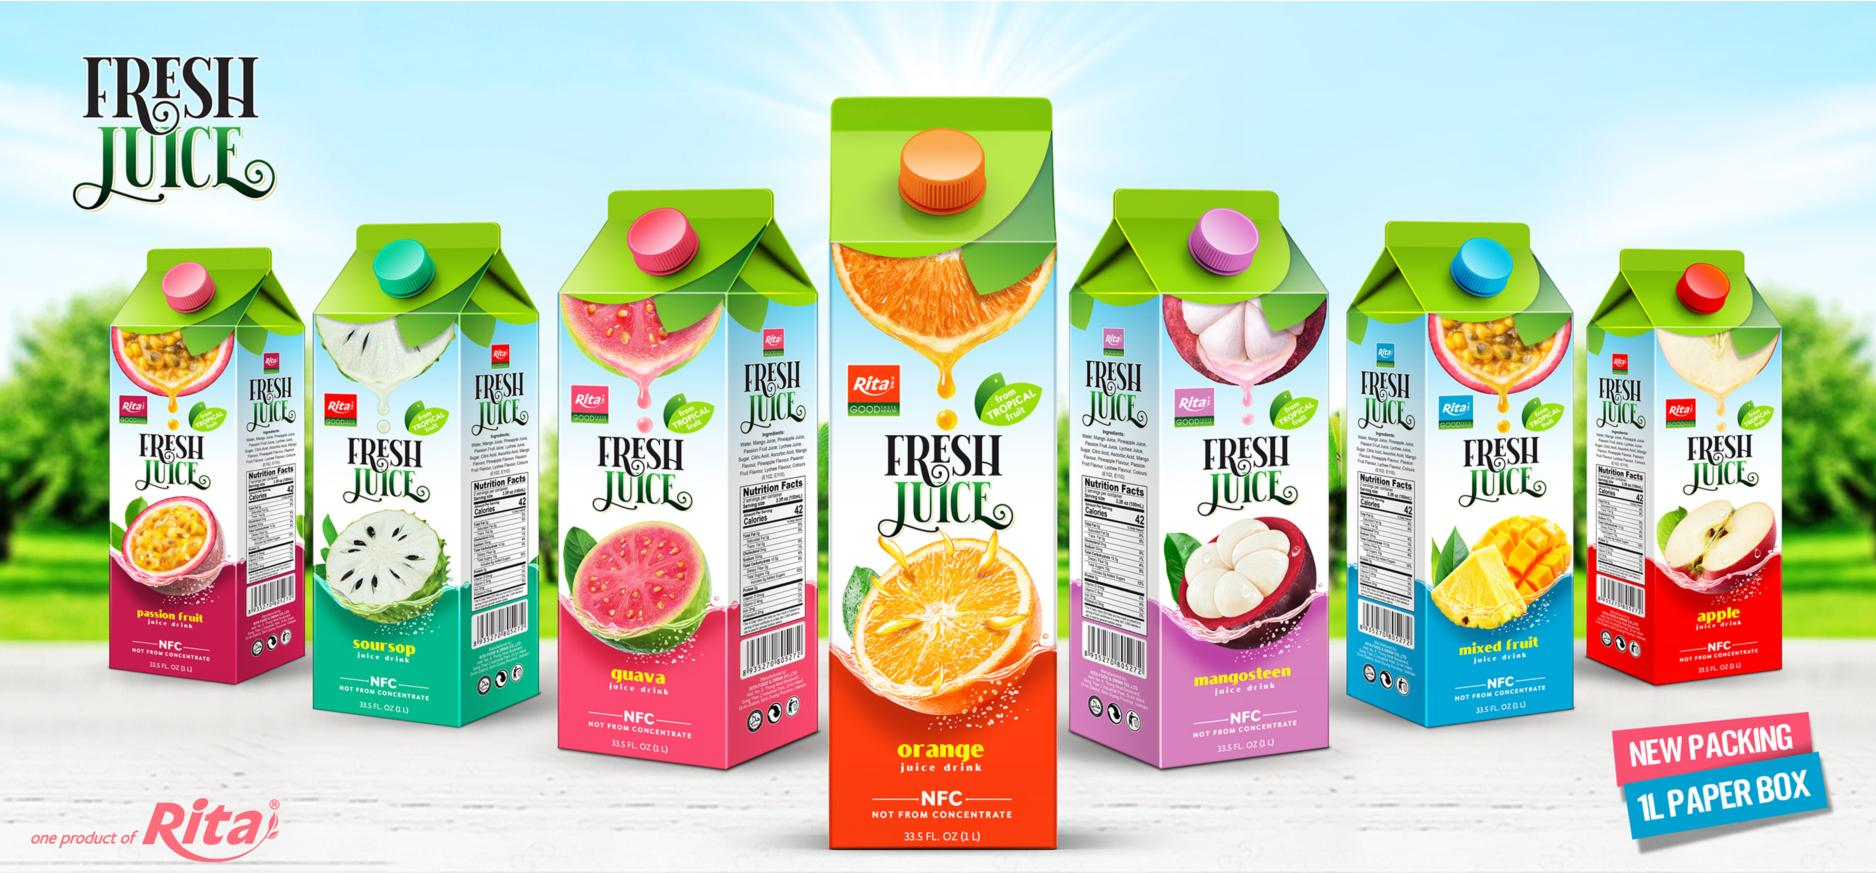 Fruit Juice 1L Paper Box